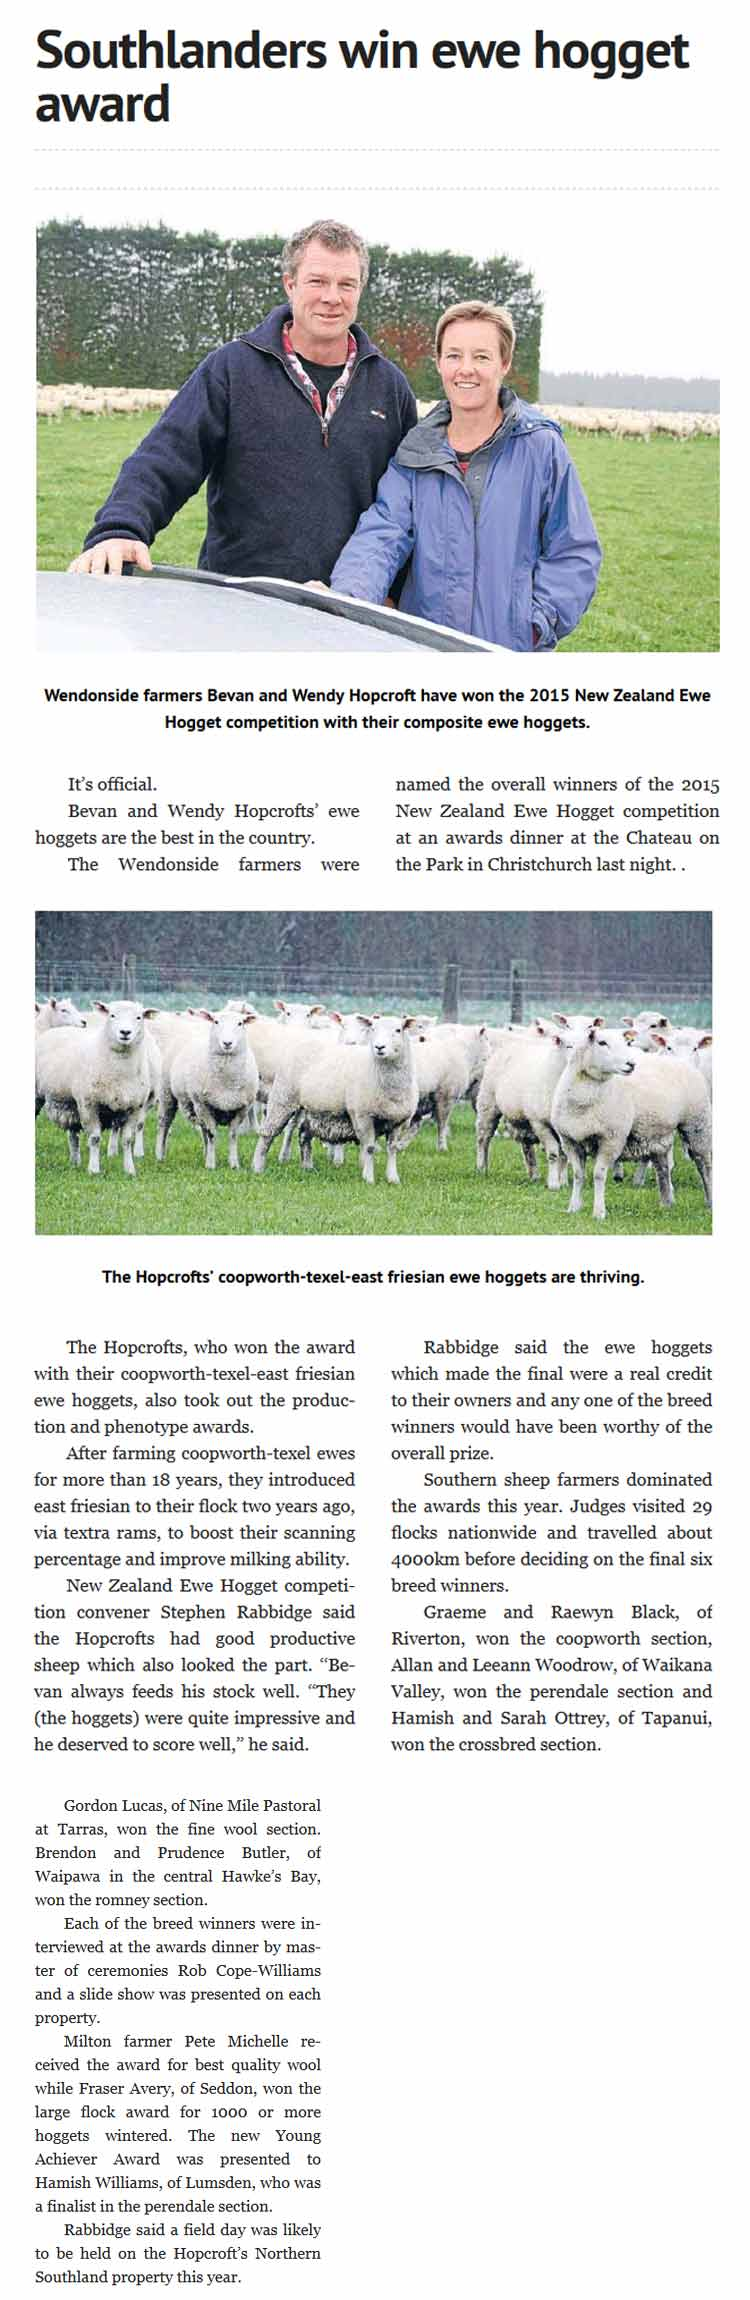 Southlanders win ewe hogget competition